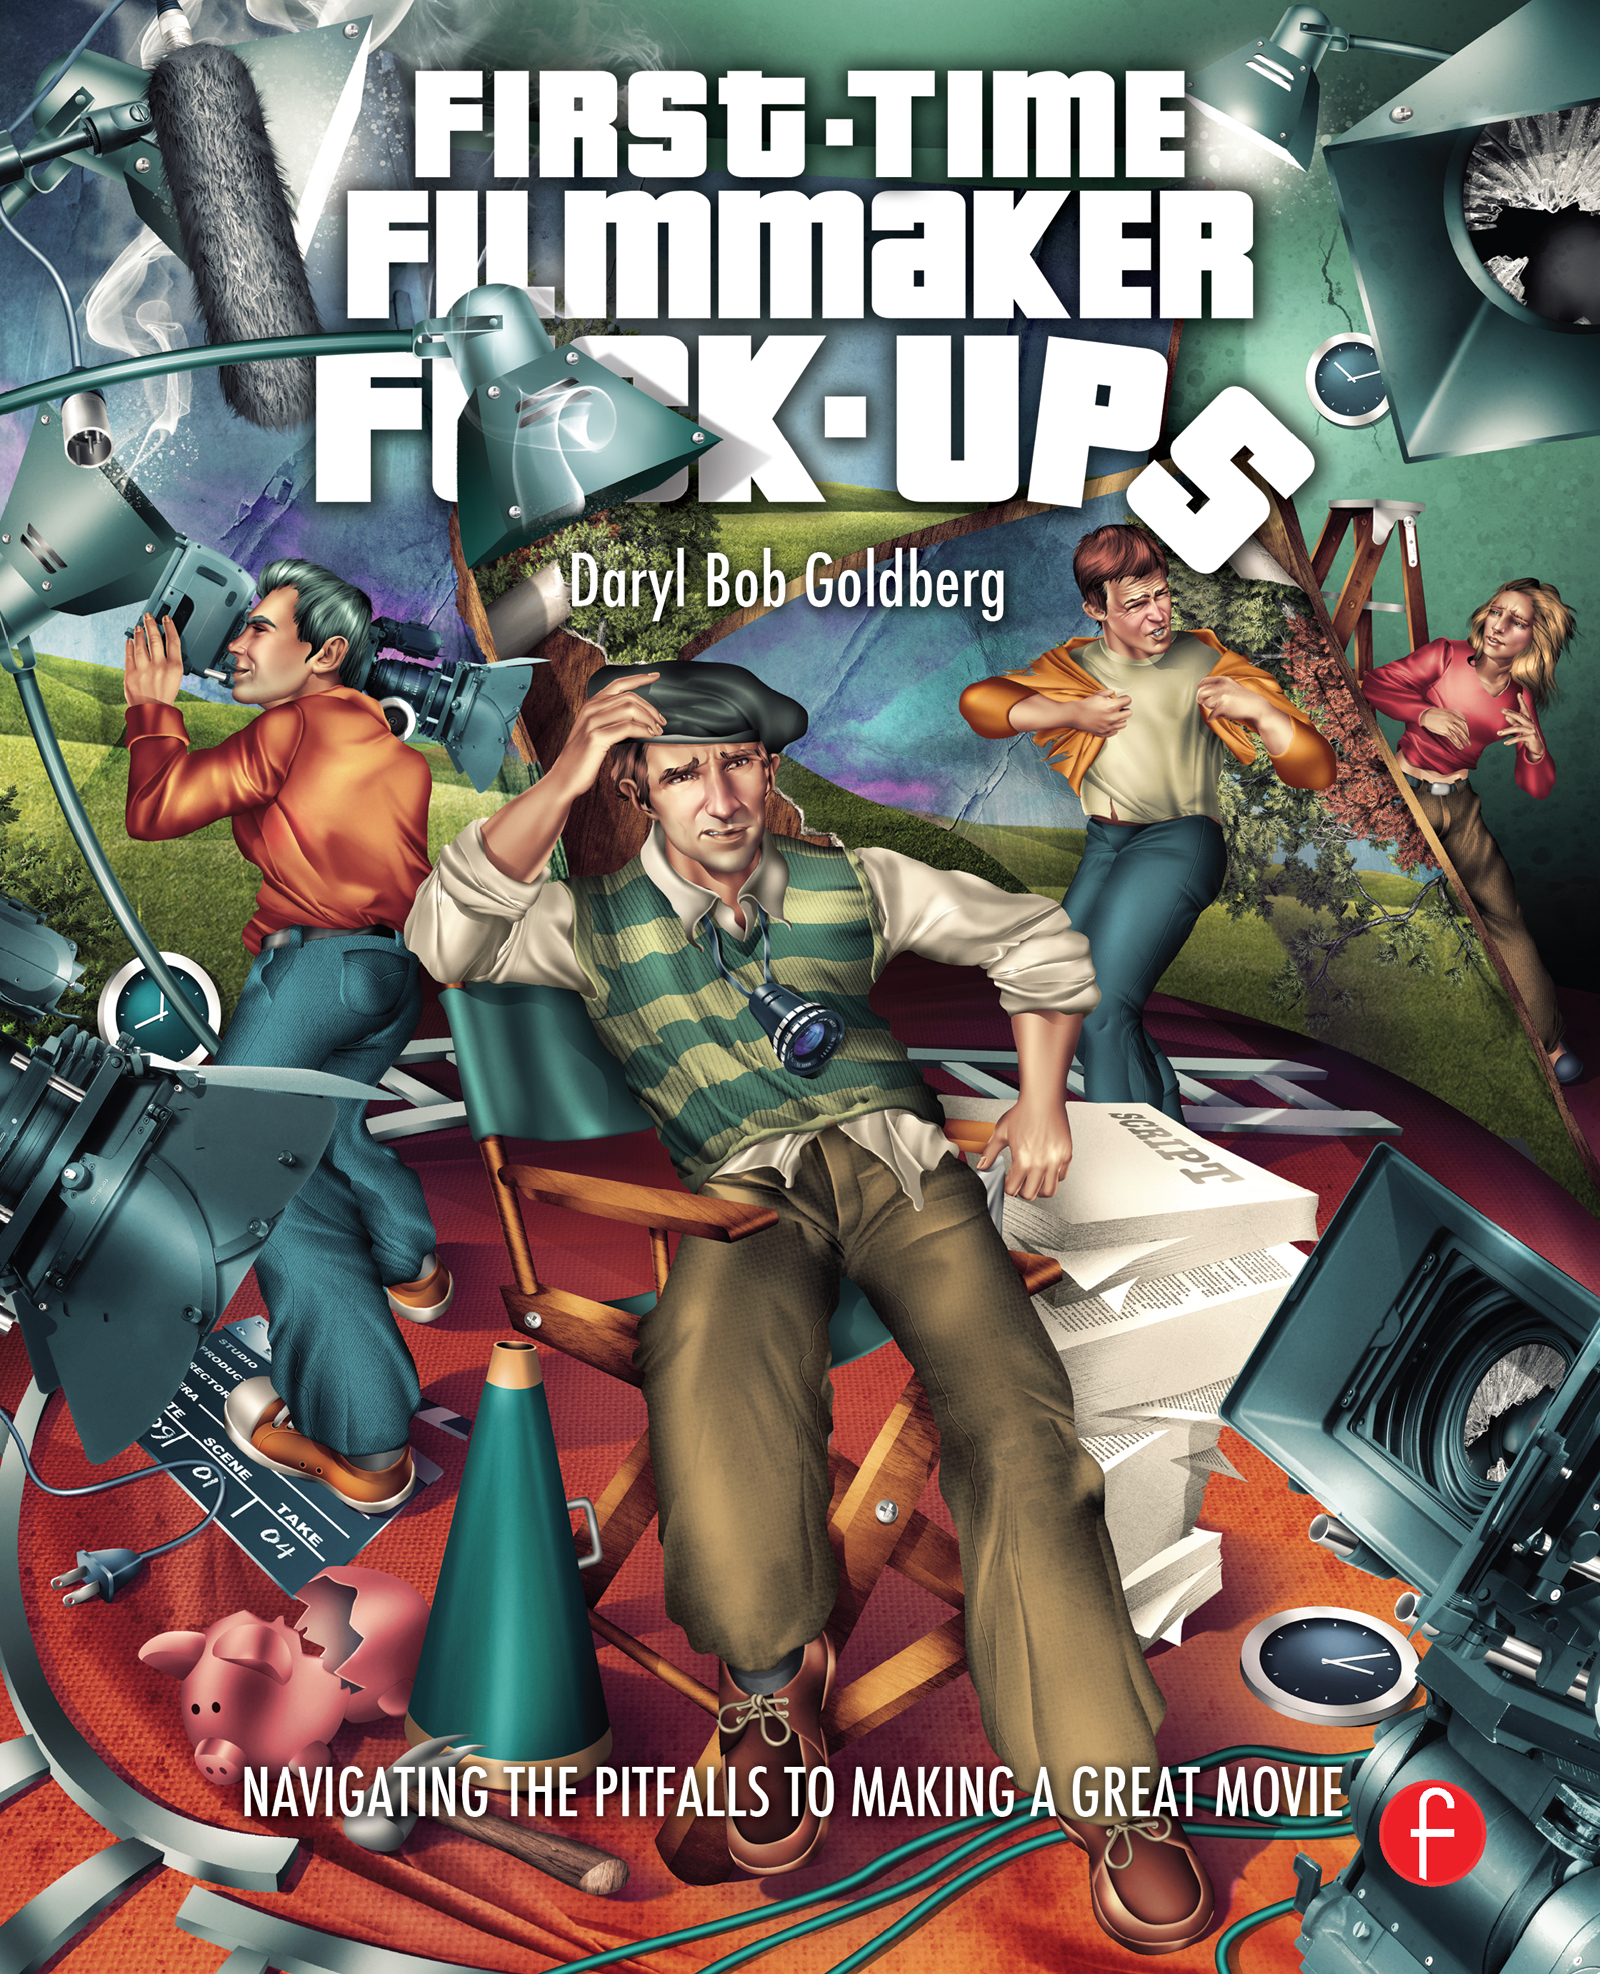 First-Time Filmmaker F*#^-ups: Navigating the Pitfalls to Making a Great Movie book cover